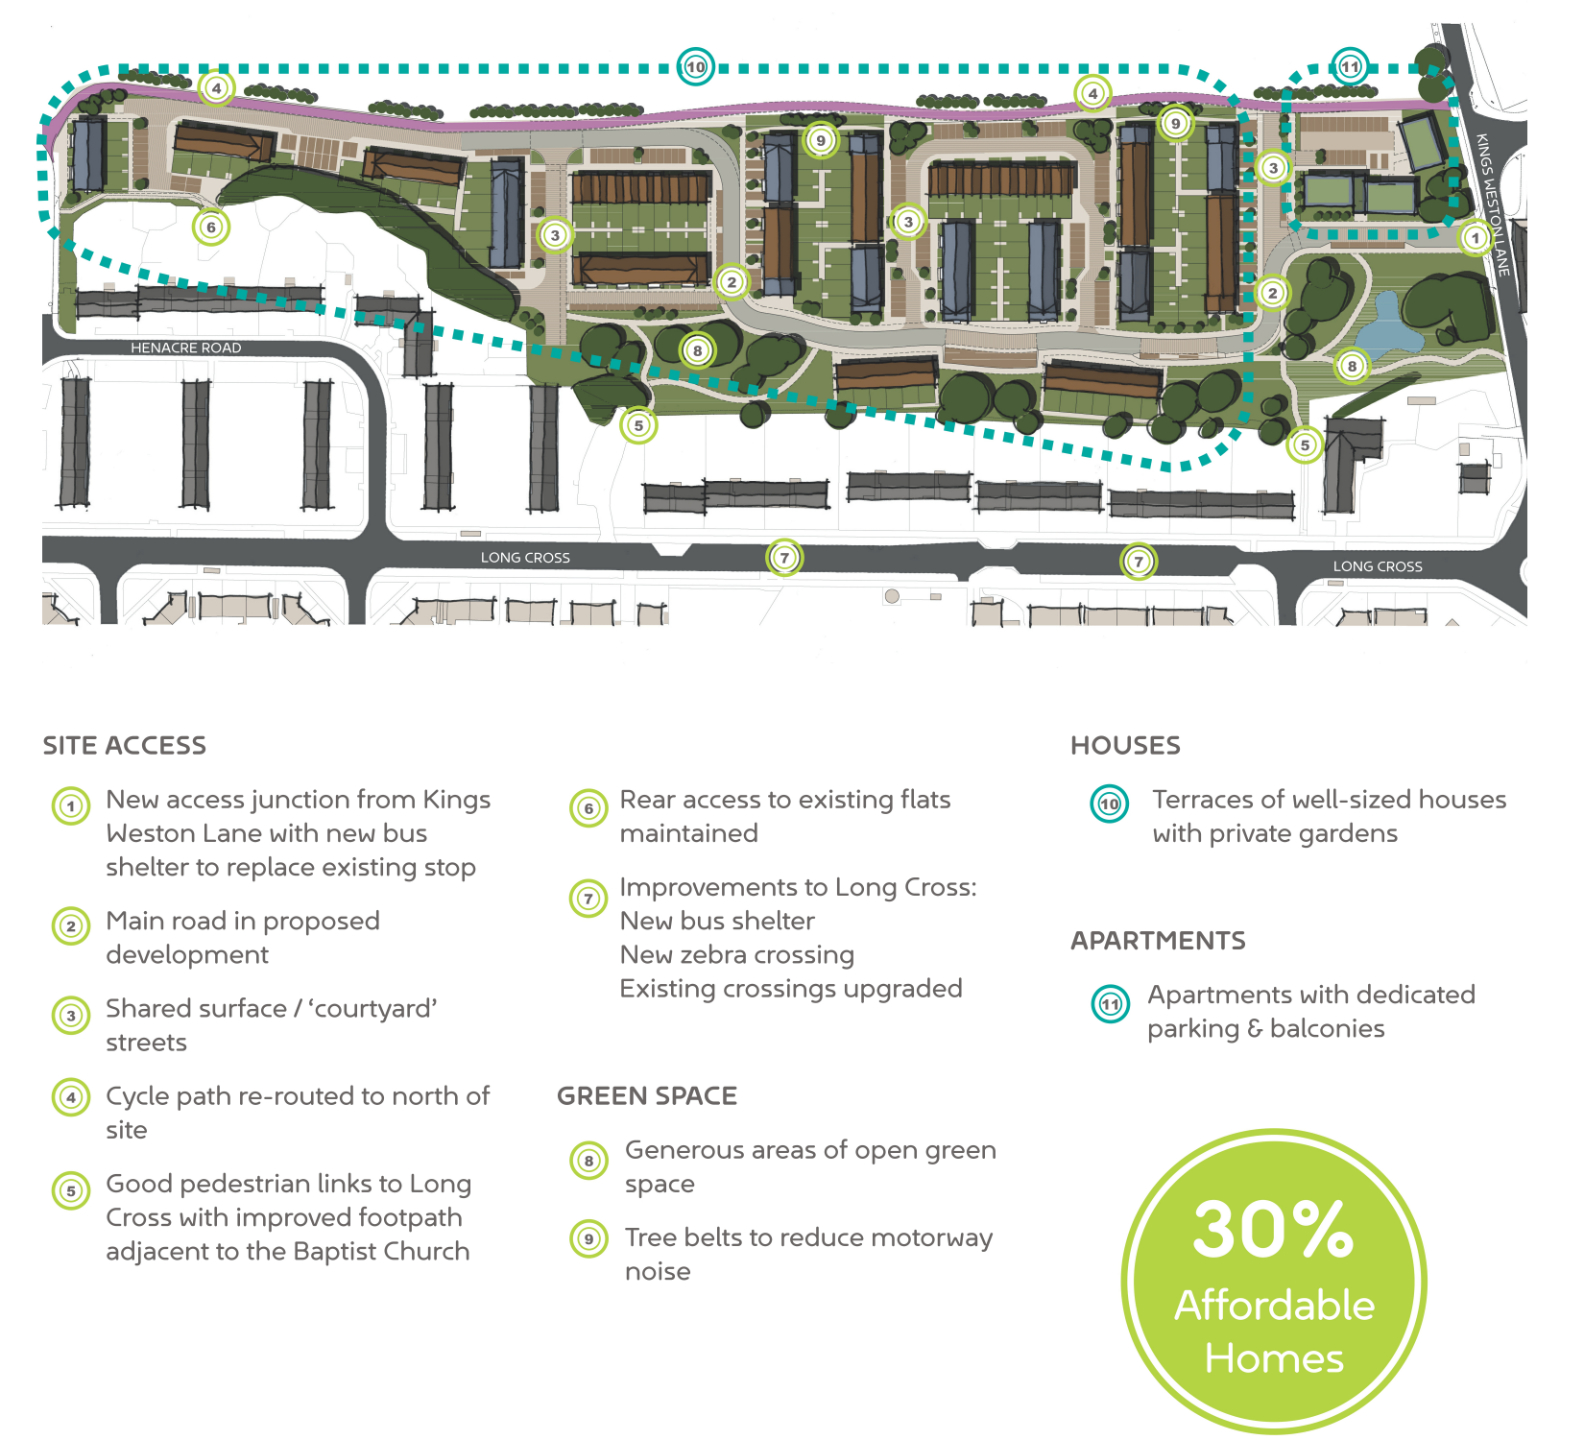 Site plan showing new homes and landscape setting.